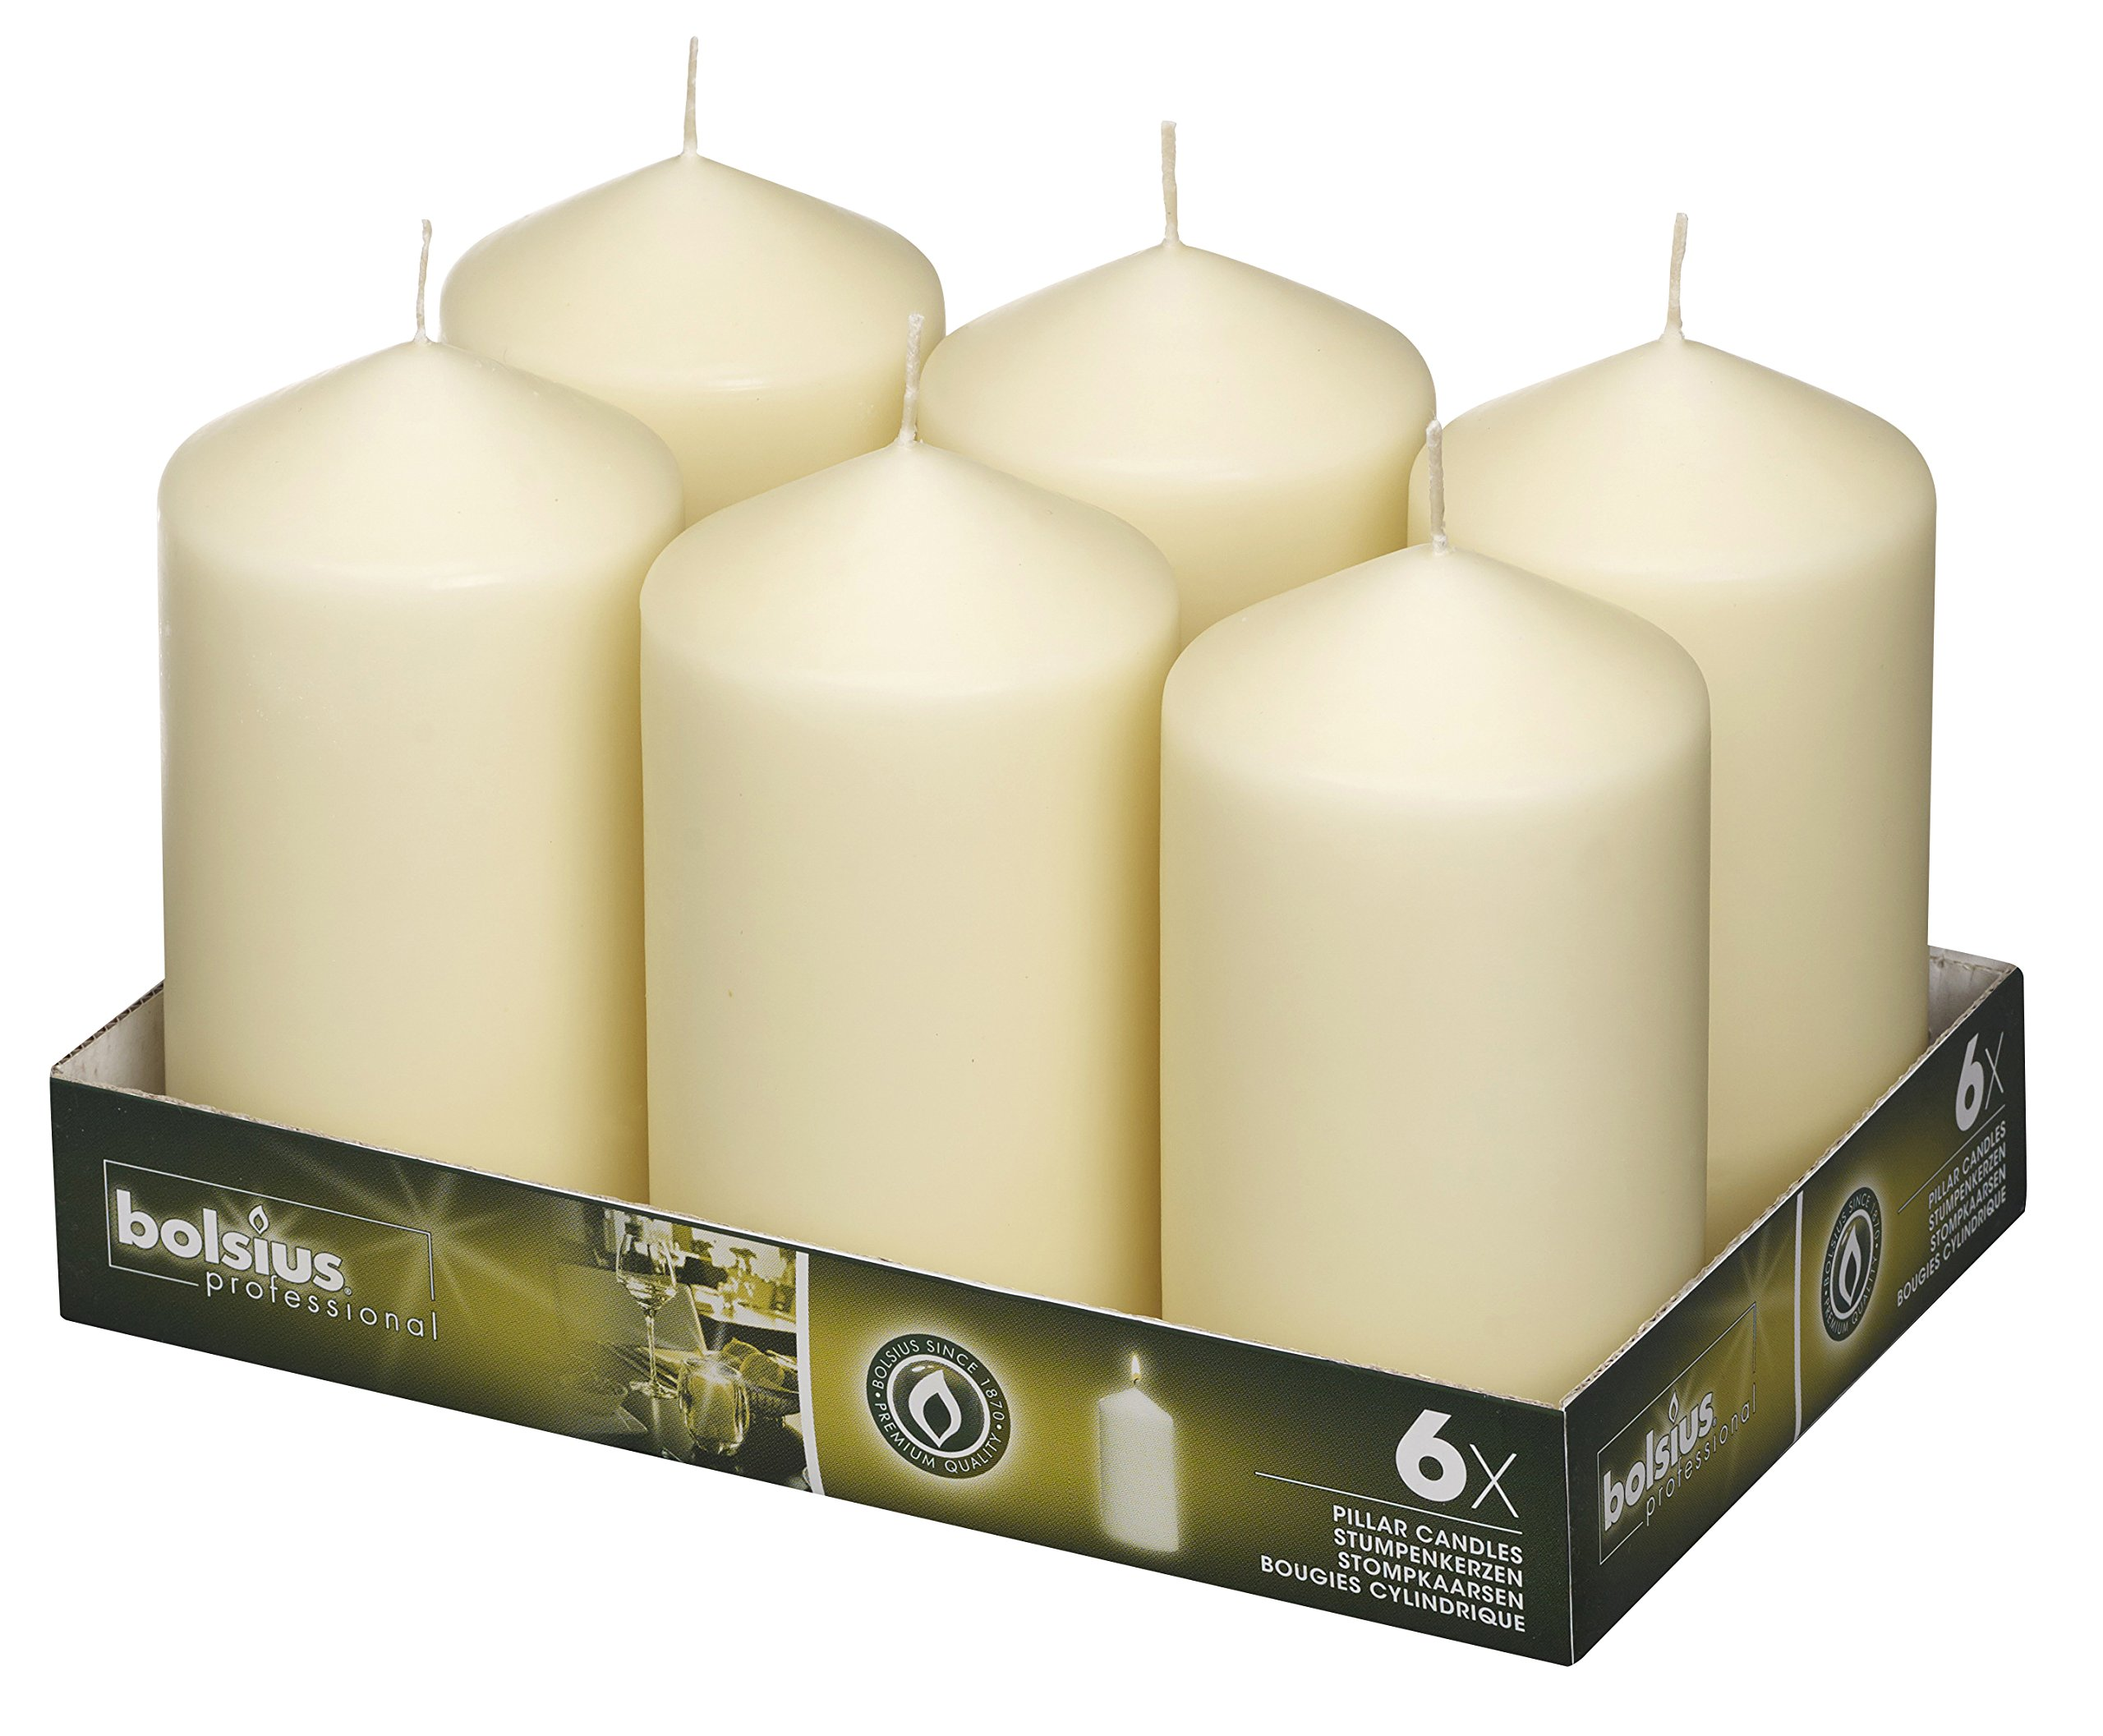 BOLSIUS Tray of 6 Ivory Pillar Candles - 65 Long Burning Hours Candle Set - 3-inch x 6-inch Dripless Candle - Perfect for Wedding Candles, Parties and Special Occasions by BOLSIUS